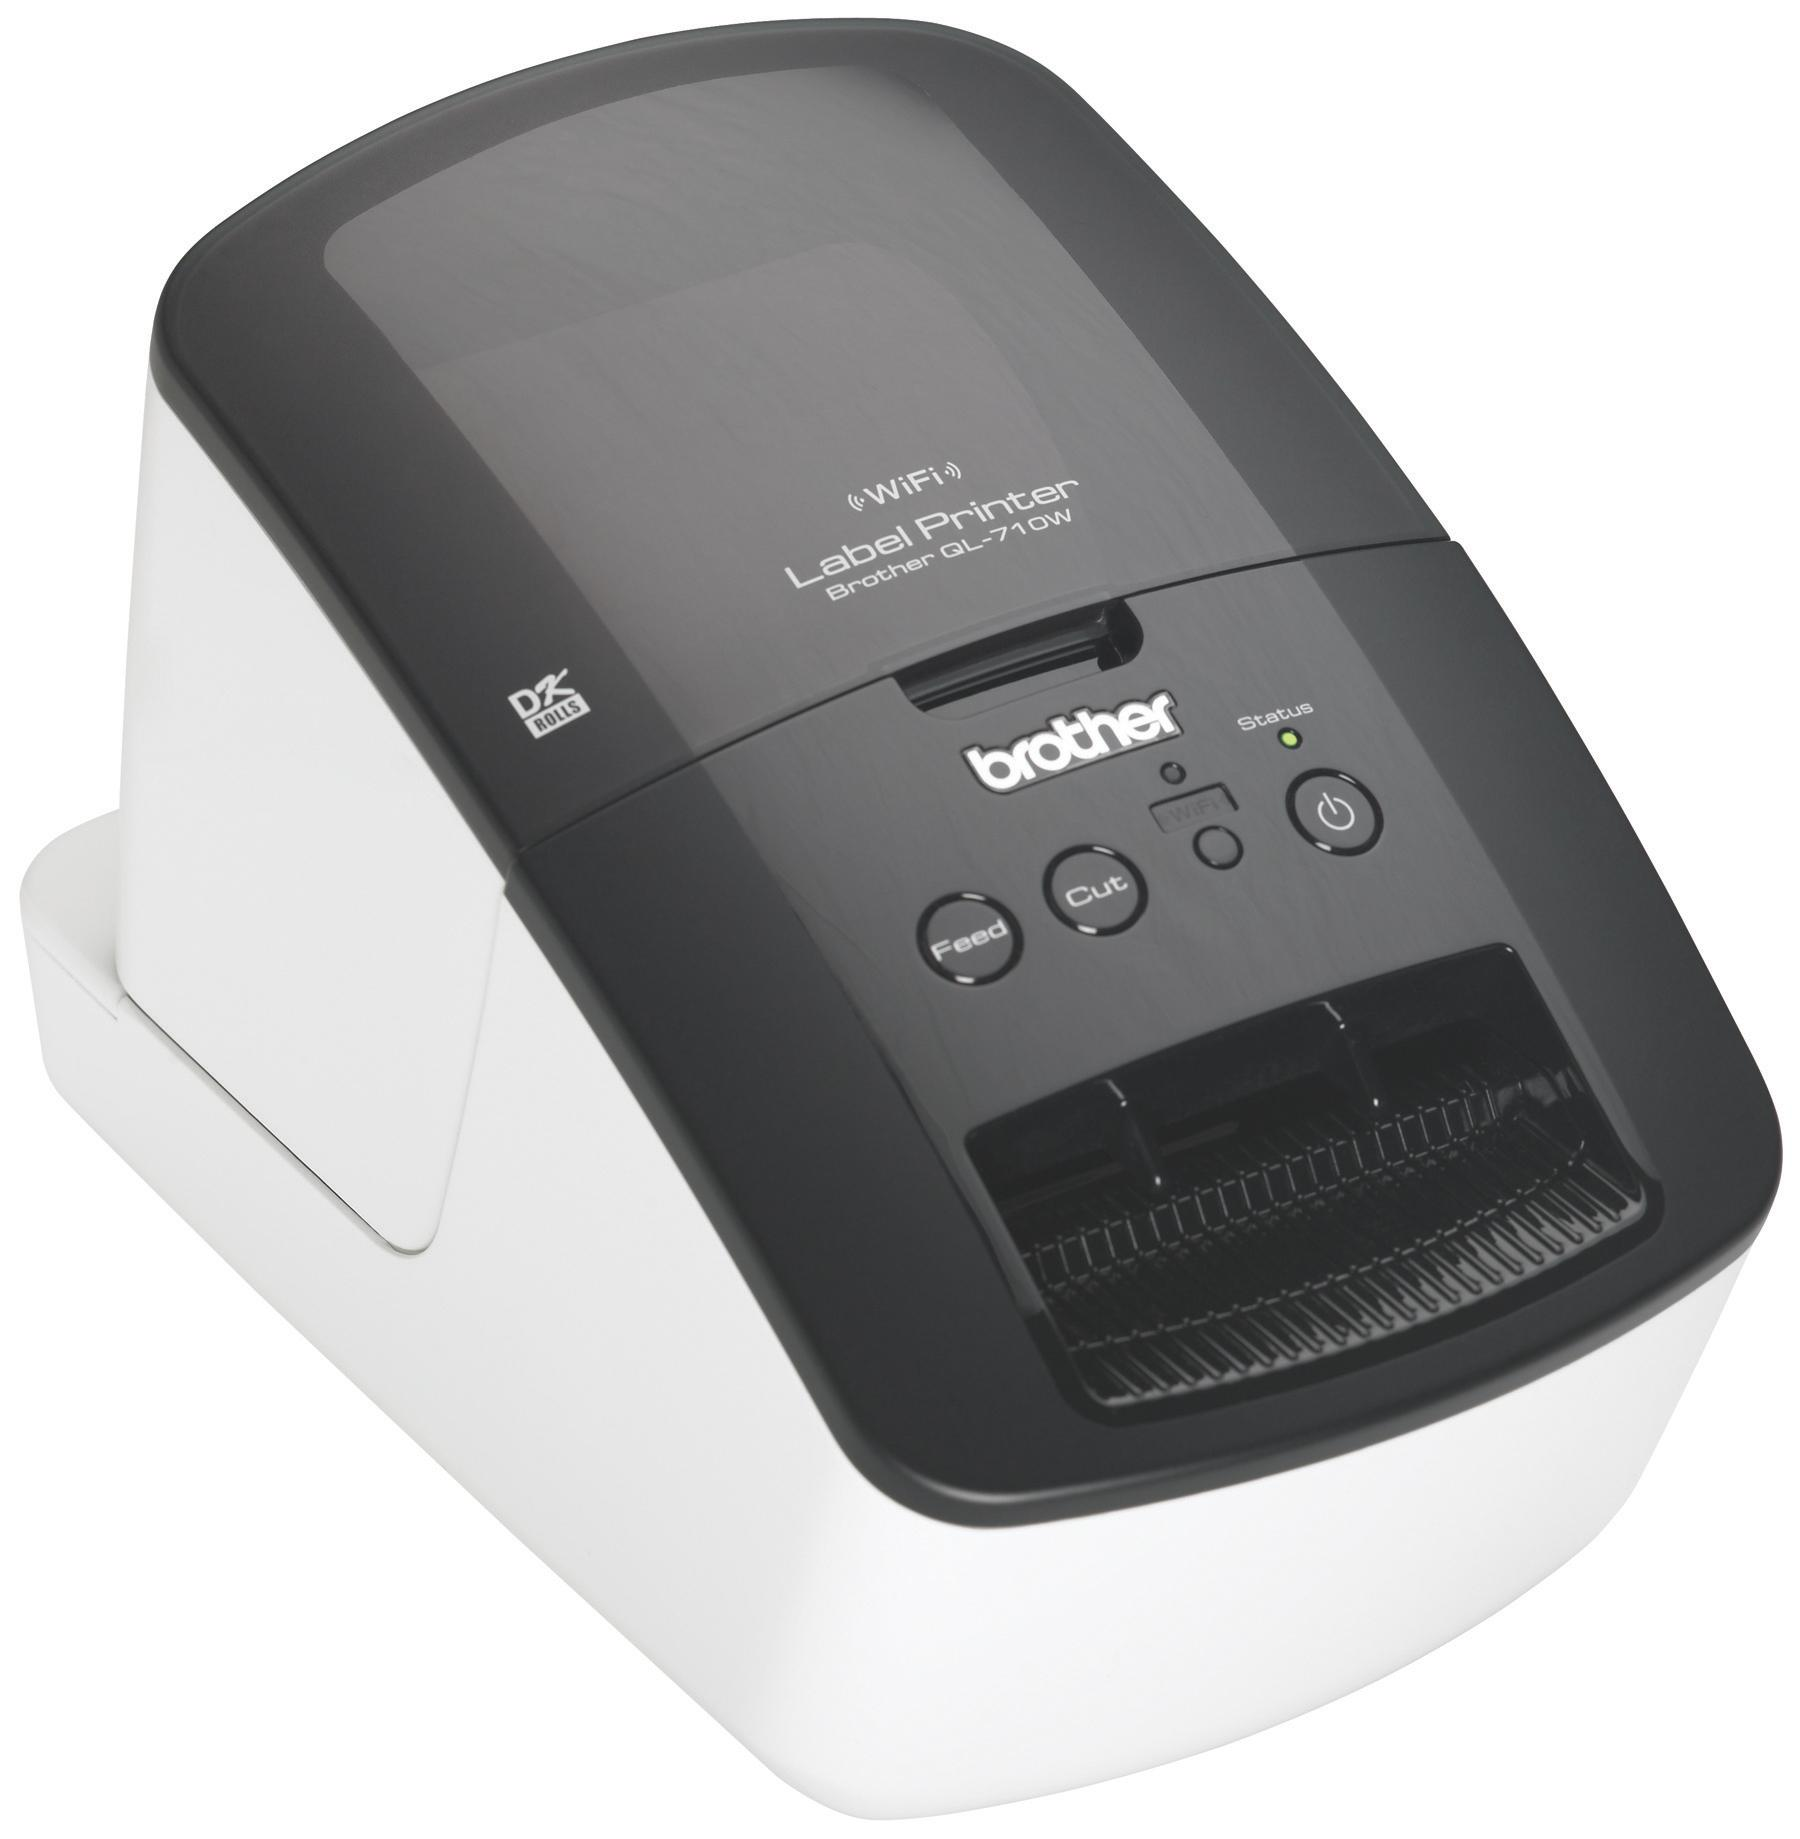 brother high speed label printer with wireless networking. Black Bedroom Furniture Sets. Home Design Ideas